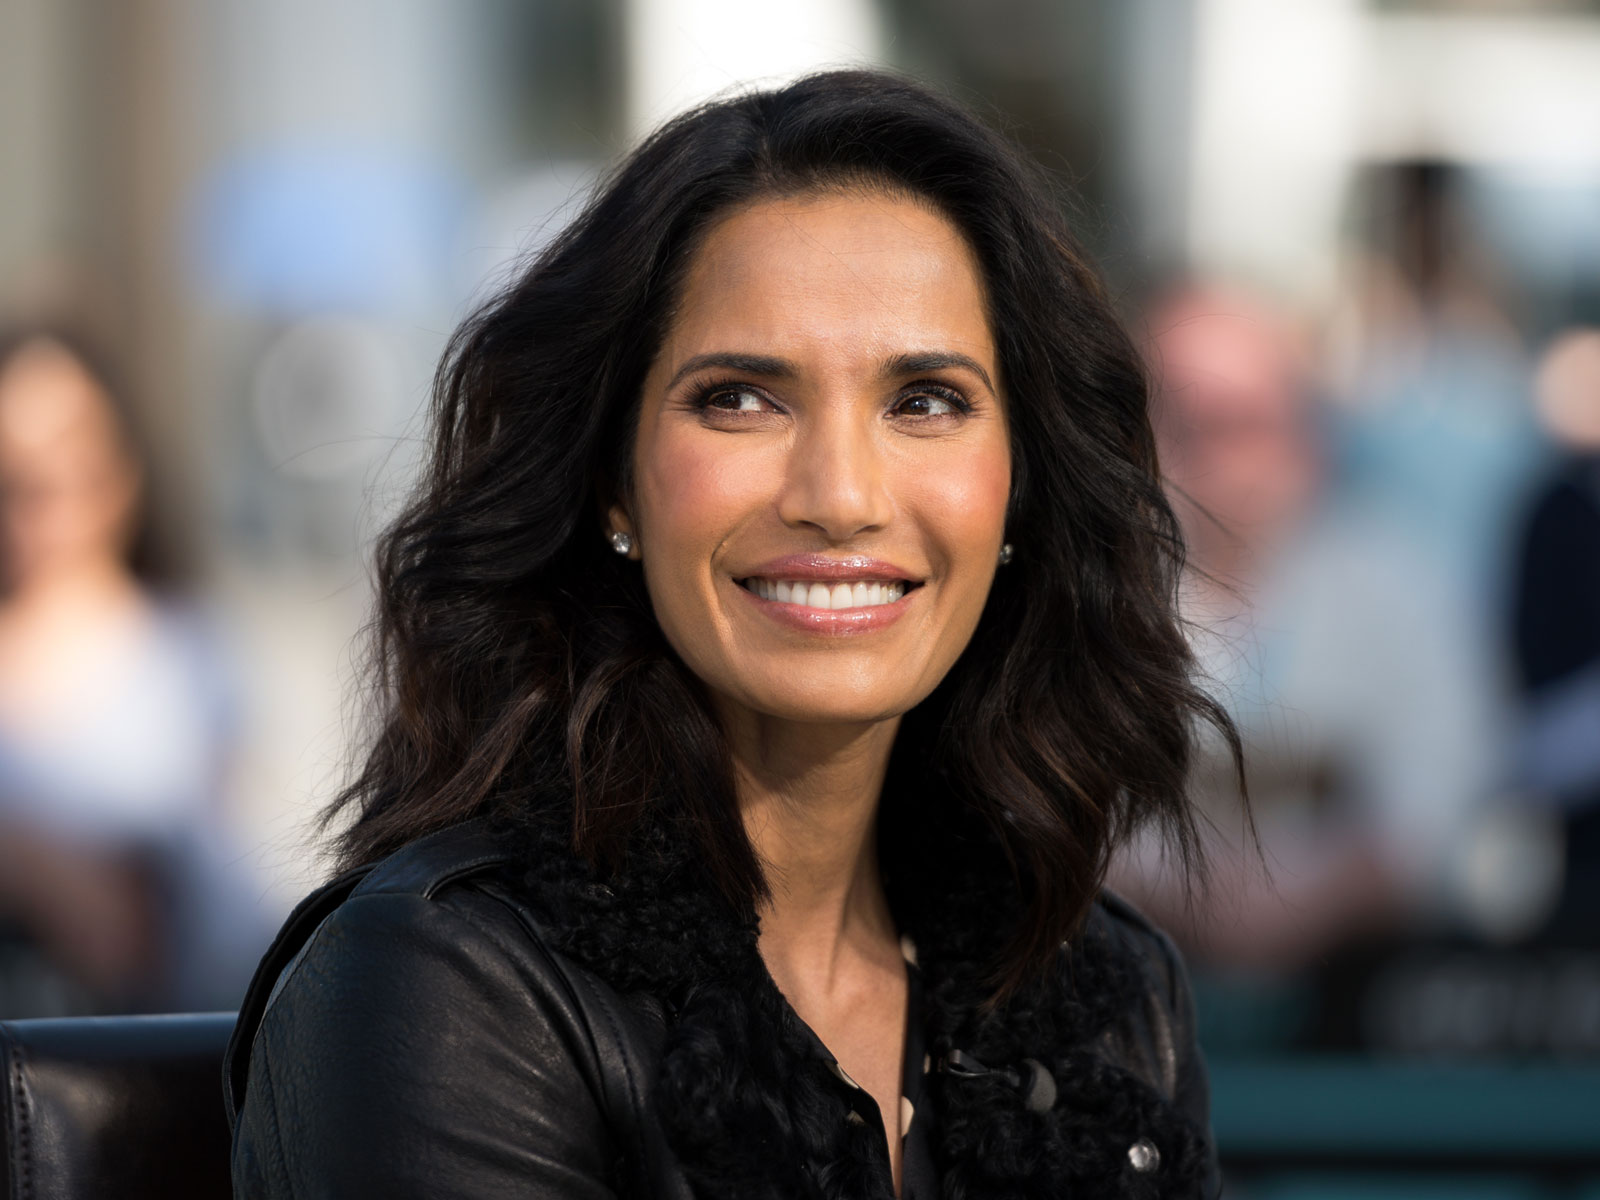 Padma Lakshmi Has a Few Ideas for Where 'Top Chef' Should Go Next